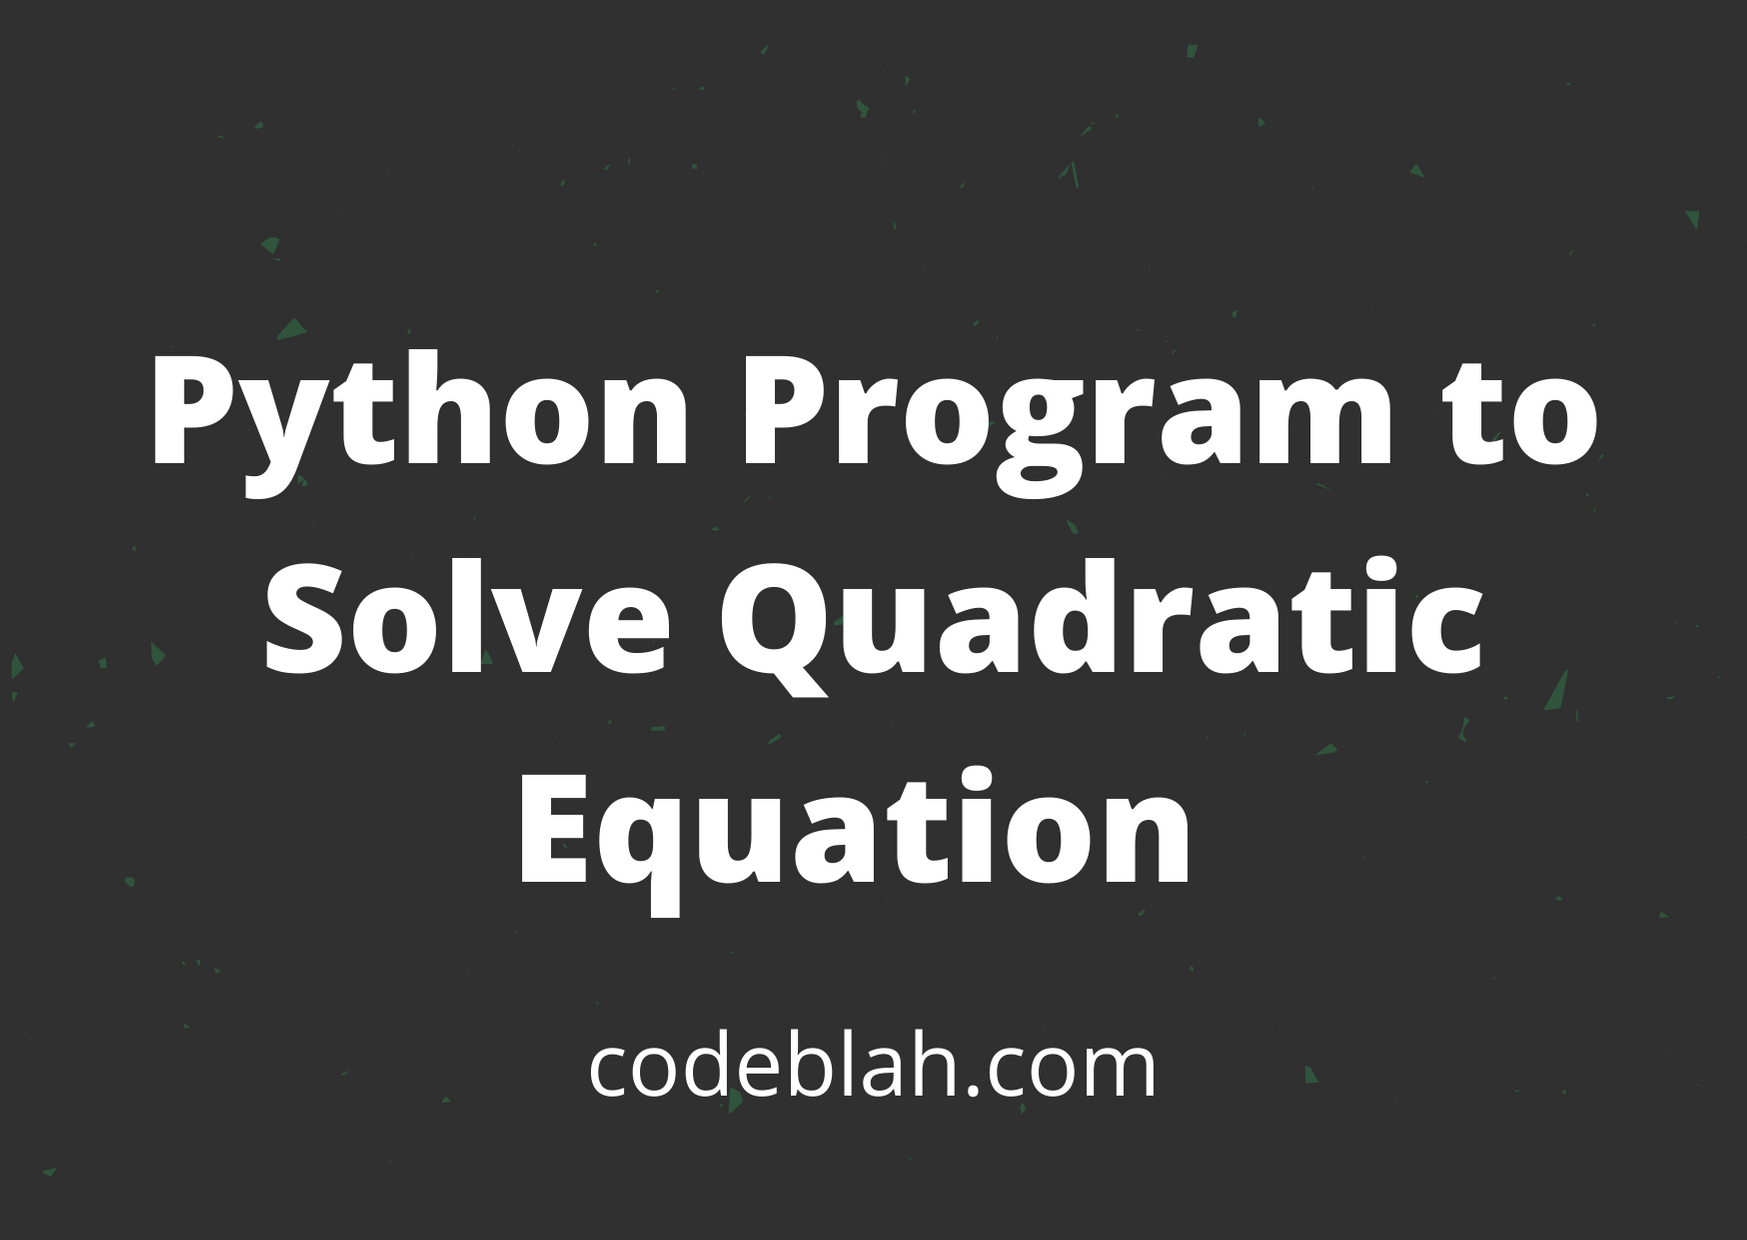 Python Program to Solve Quadratic Equation